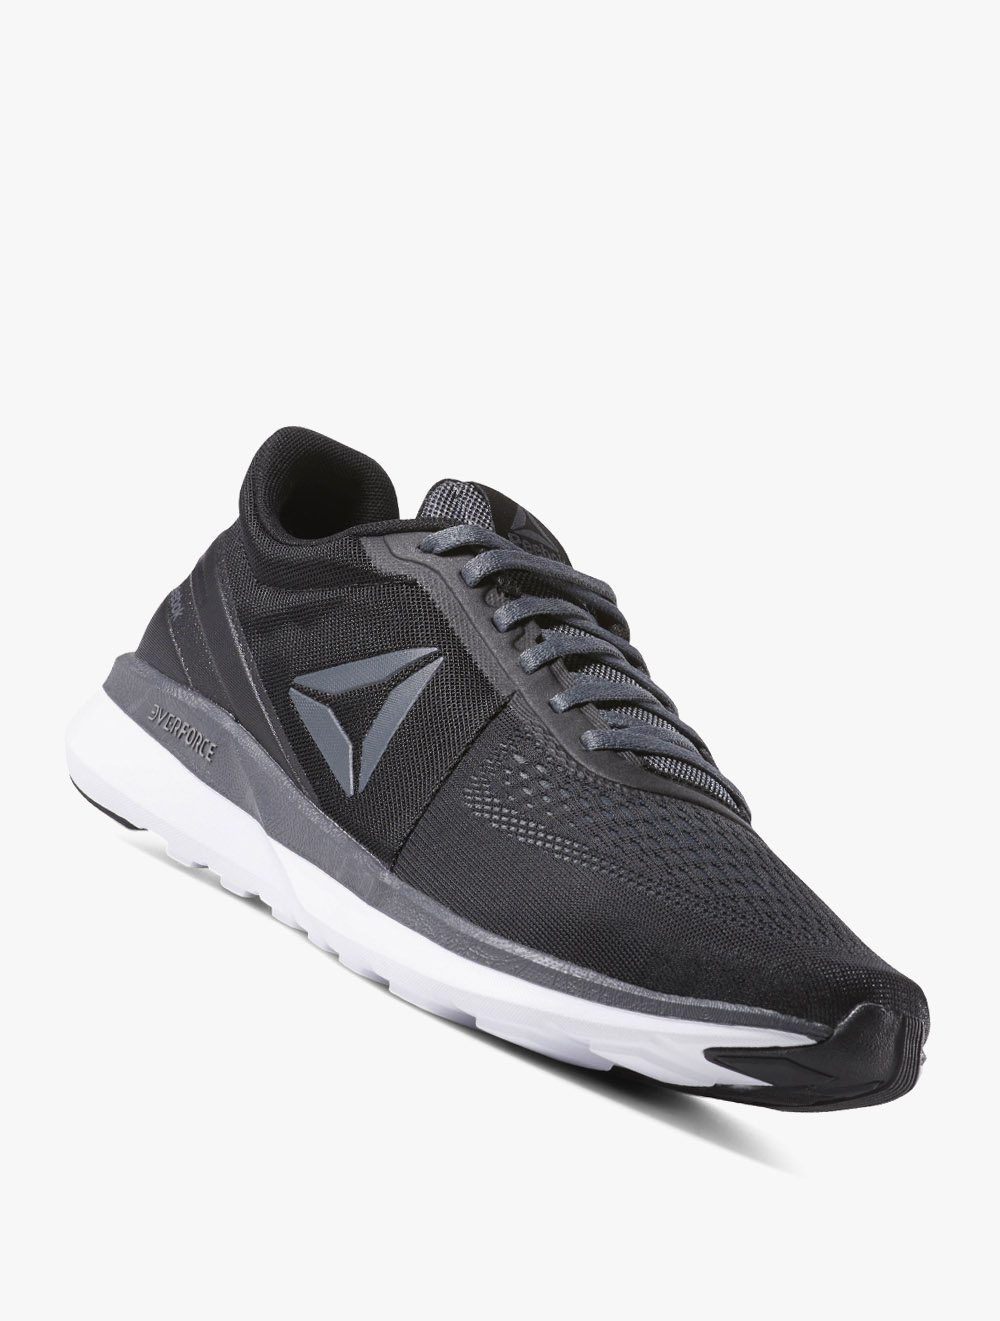 Reebok Everforce Breeze Men's Running Shoes